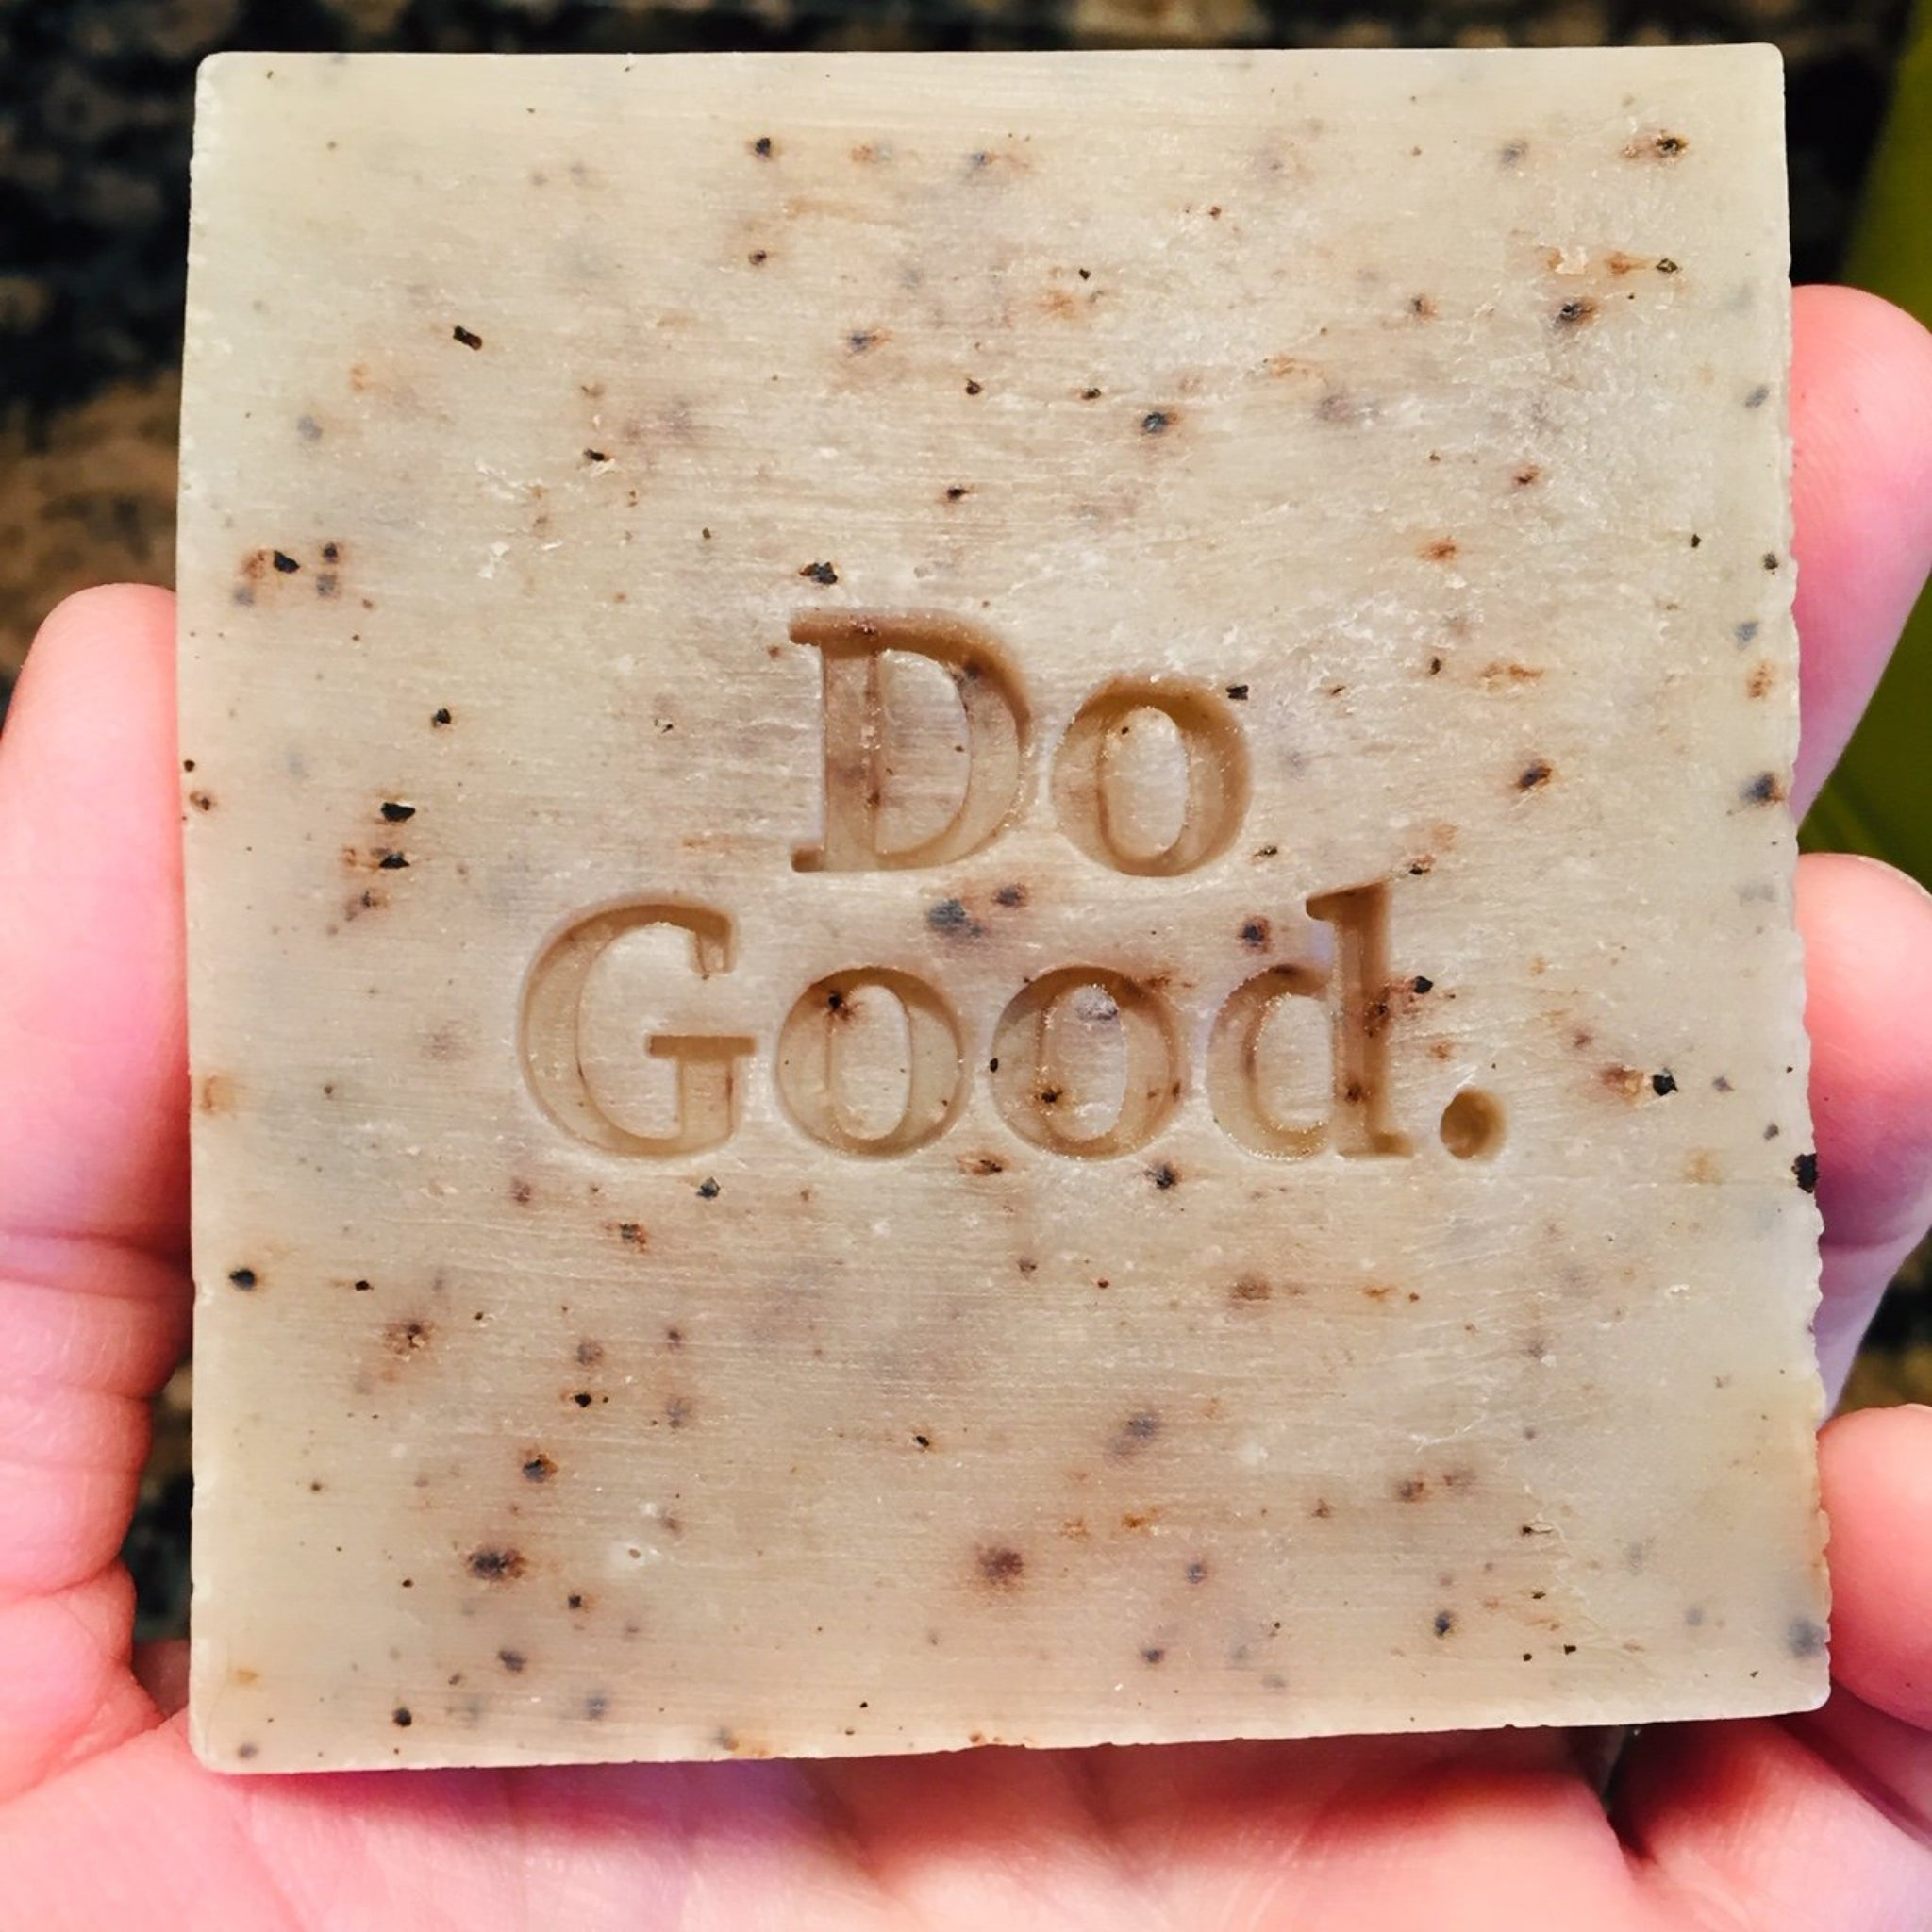 The Dandy Soap Bar - Do Good Soaps and Suds